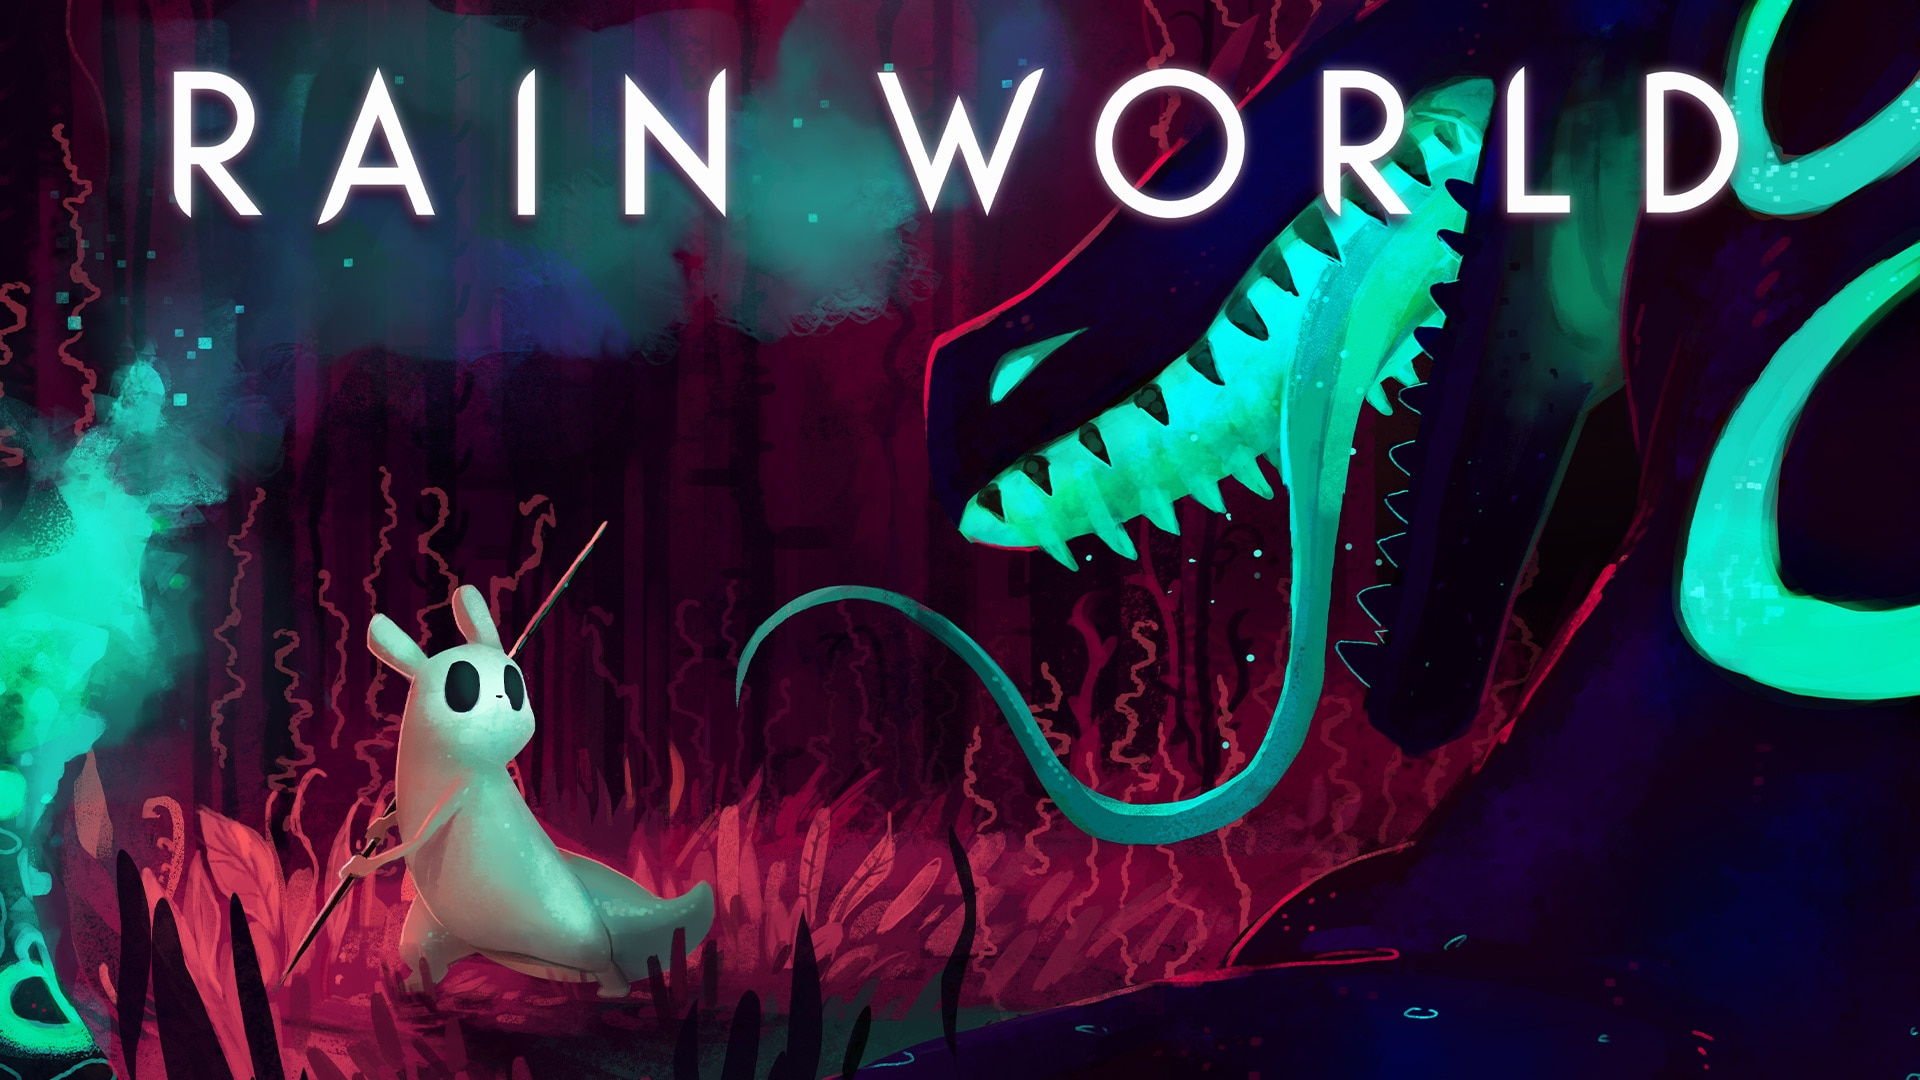 Rain World Trailer